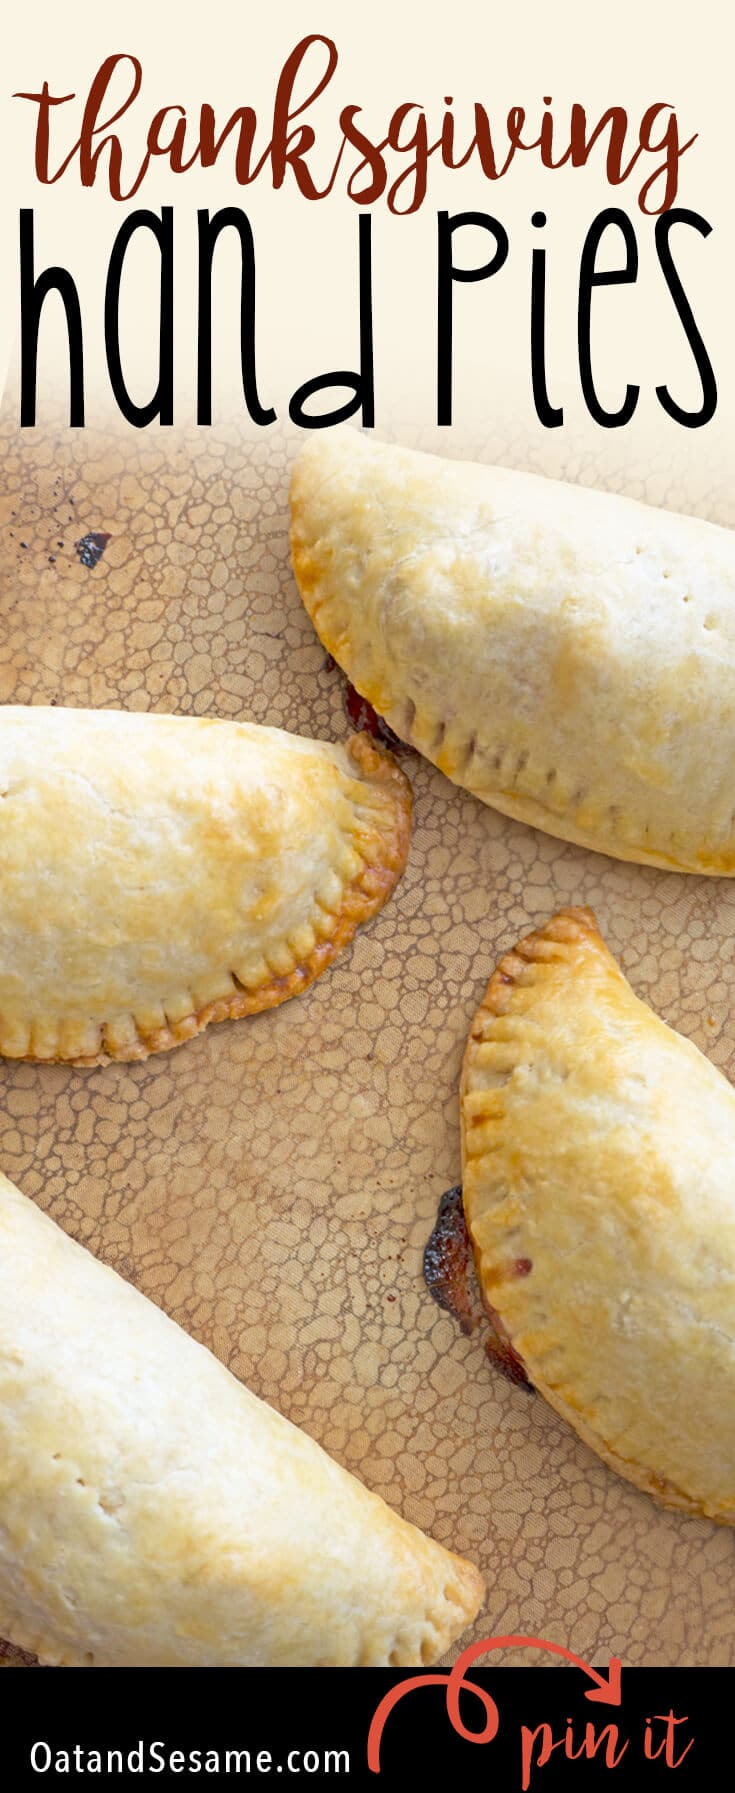 Thanksgiving Hand Pies are stuffed with all the leftover ingredients from Thanksgiving! One simple step before Thanksgiving will have you prepped and ready to roll these out and load them up with everything you've got left! | THANKSGIVING | LEFTOVERS | HANDPIES | HOT POCKETS | Recipe at OatandSesame.com